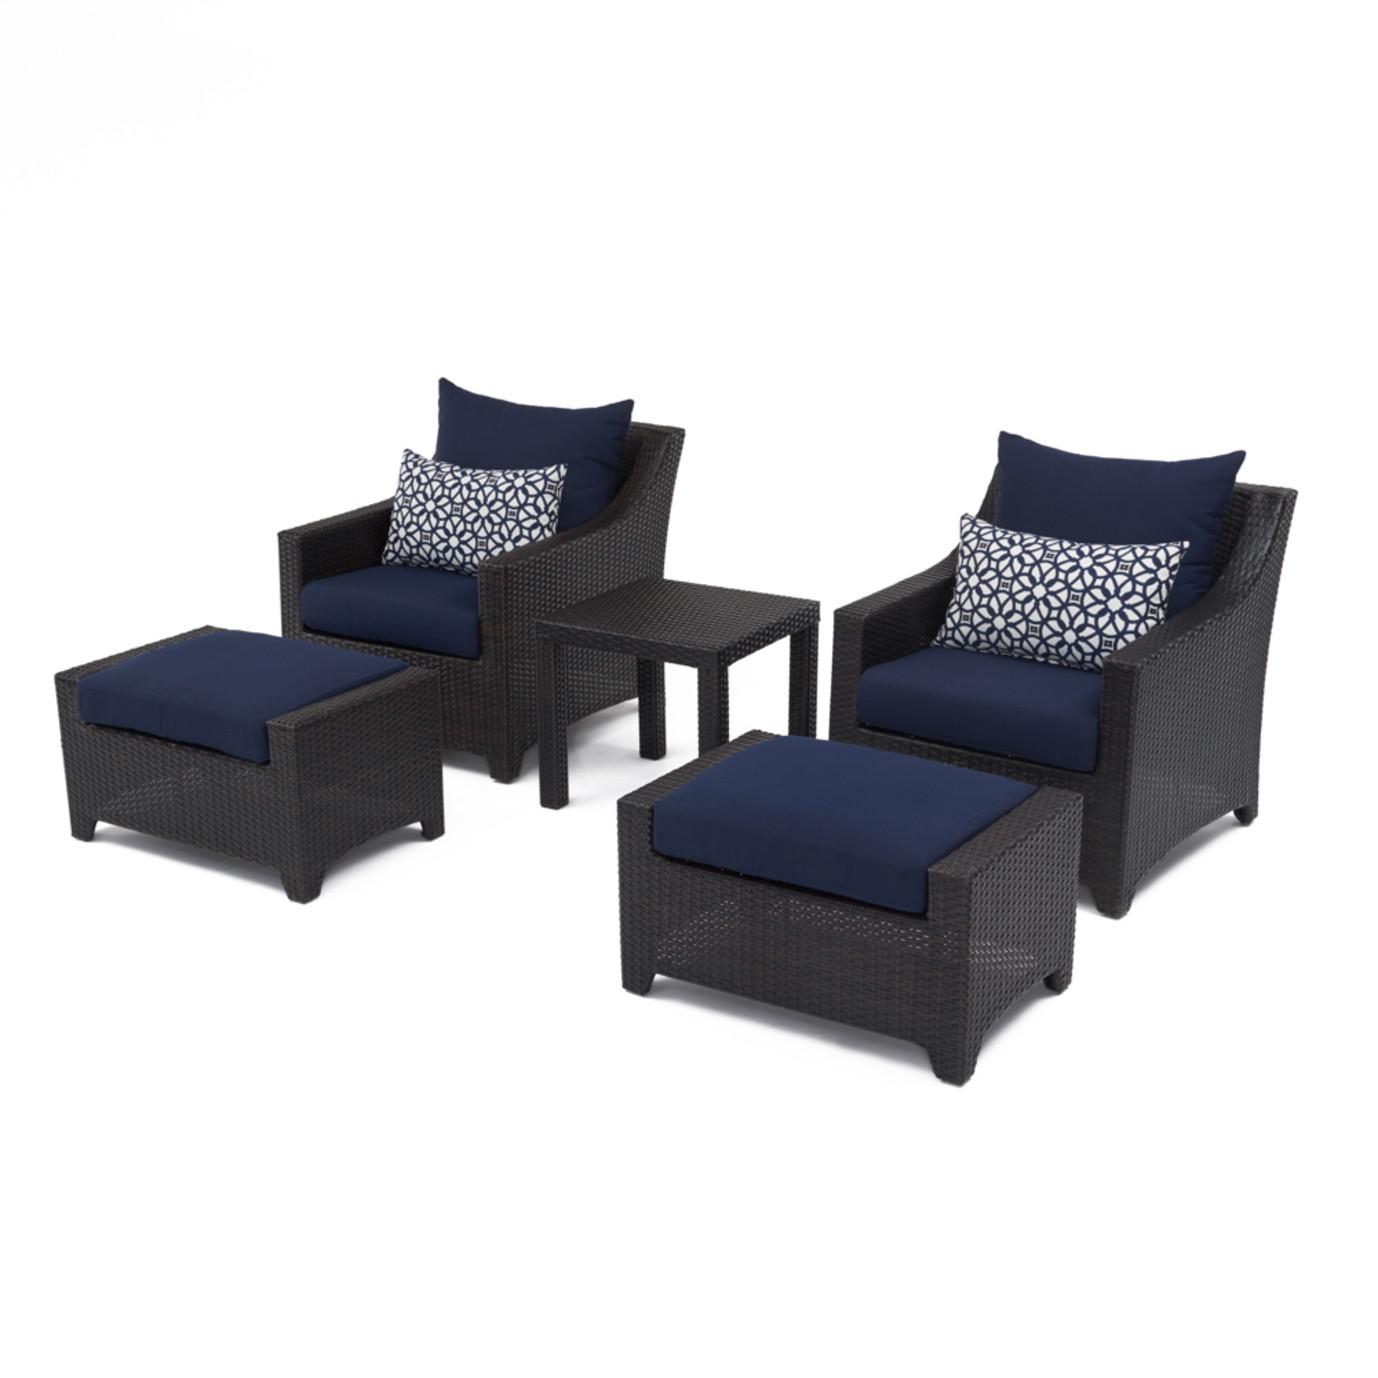 Deco 5pc club chair and ottoman set navy blue rst brands for Navy blue chair and ottoman